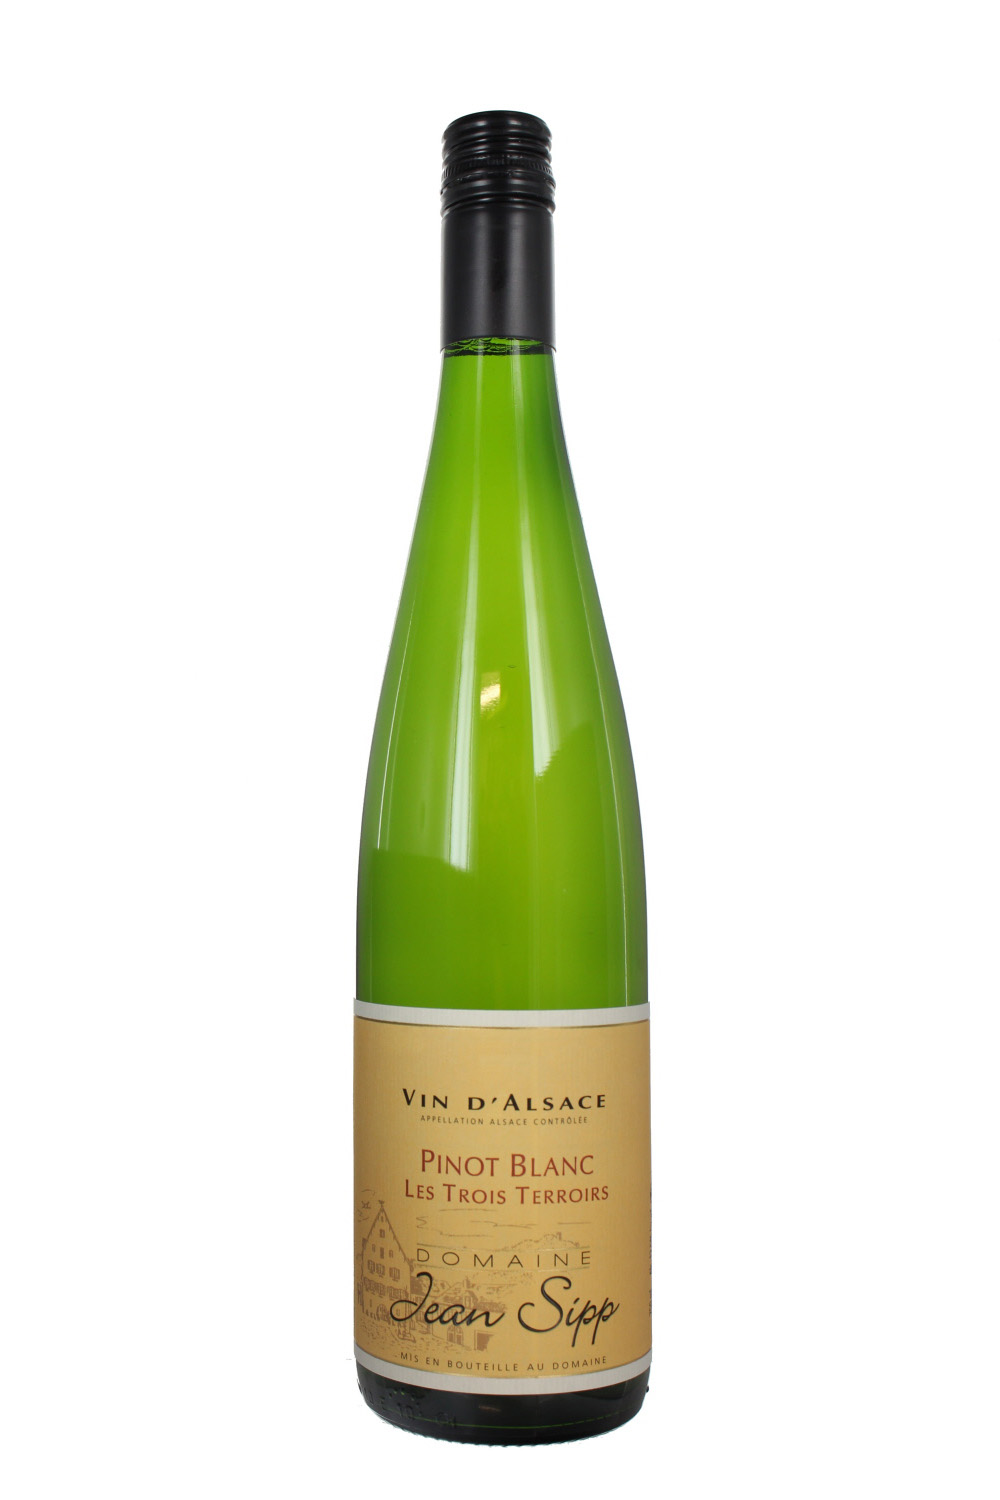 2017 Pinot Blanc, Trois Terroirs, Domaine Jean Sipp, Alsace, France (Case)